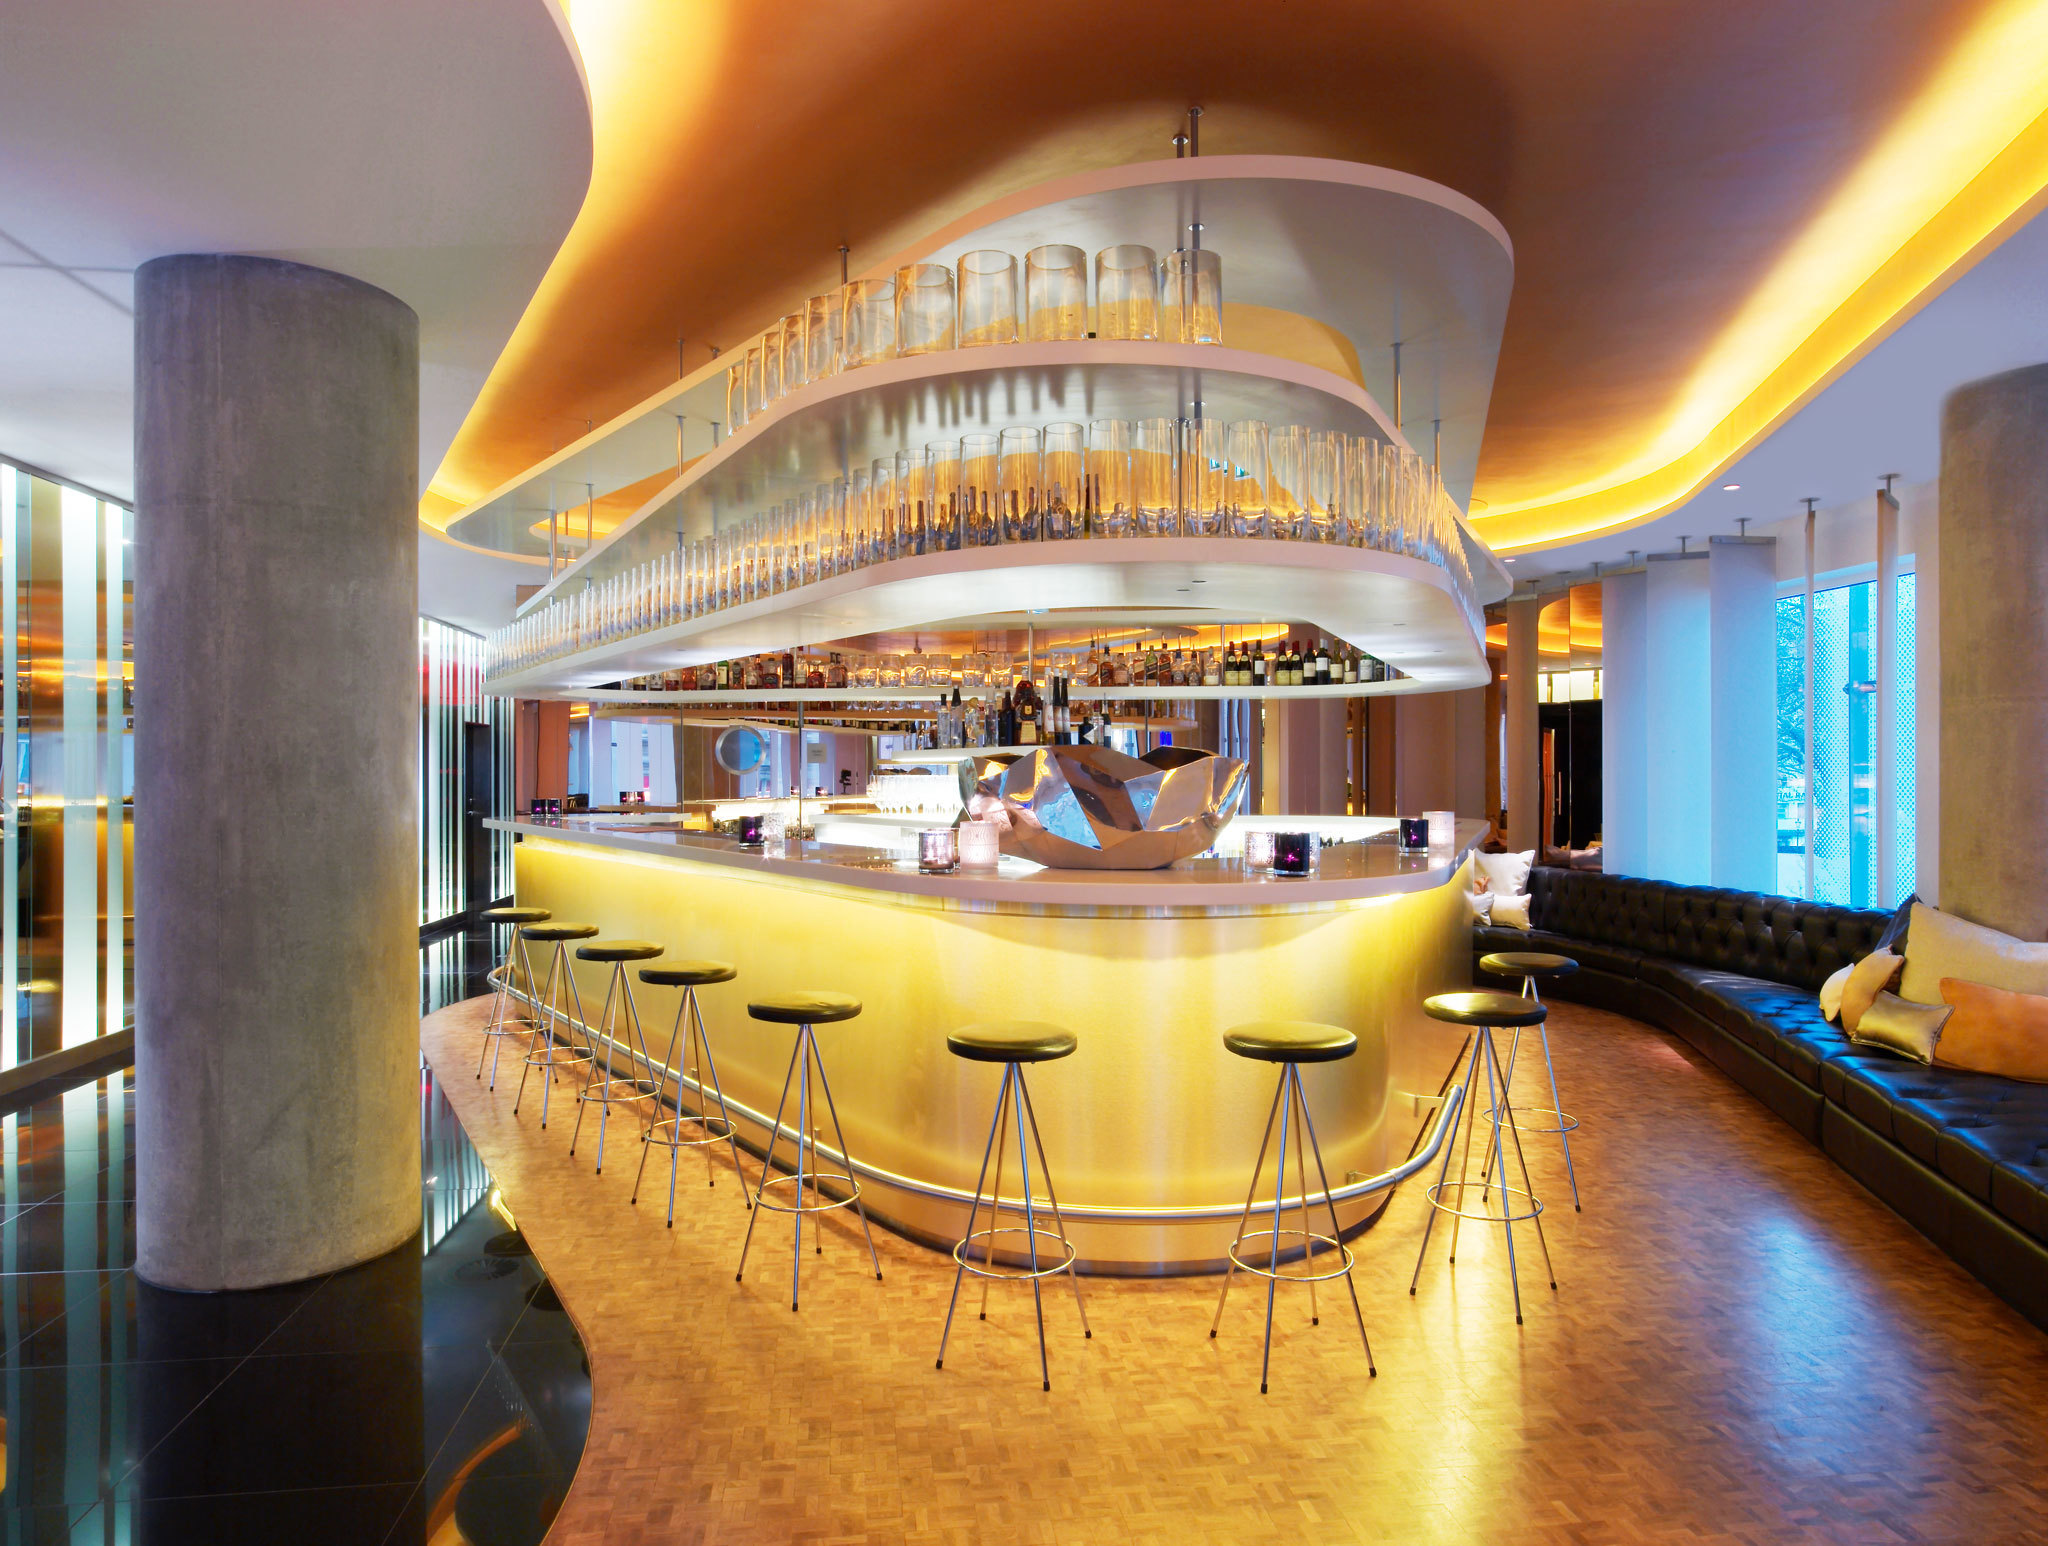 W London - venue listing - bar area 2